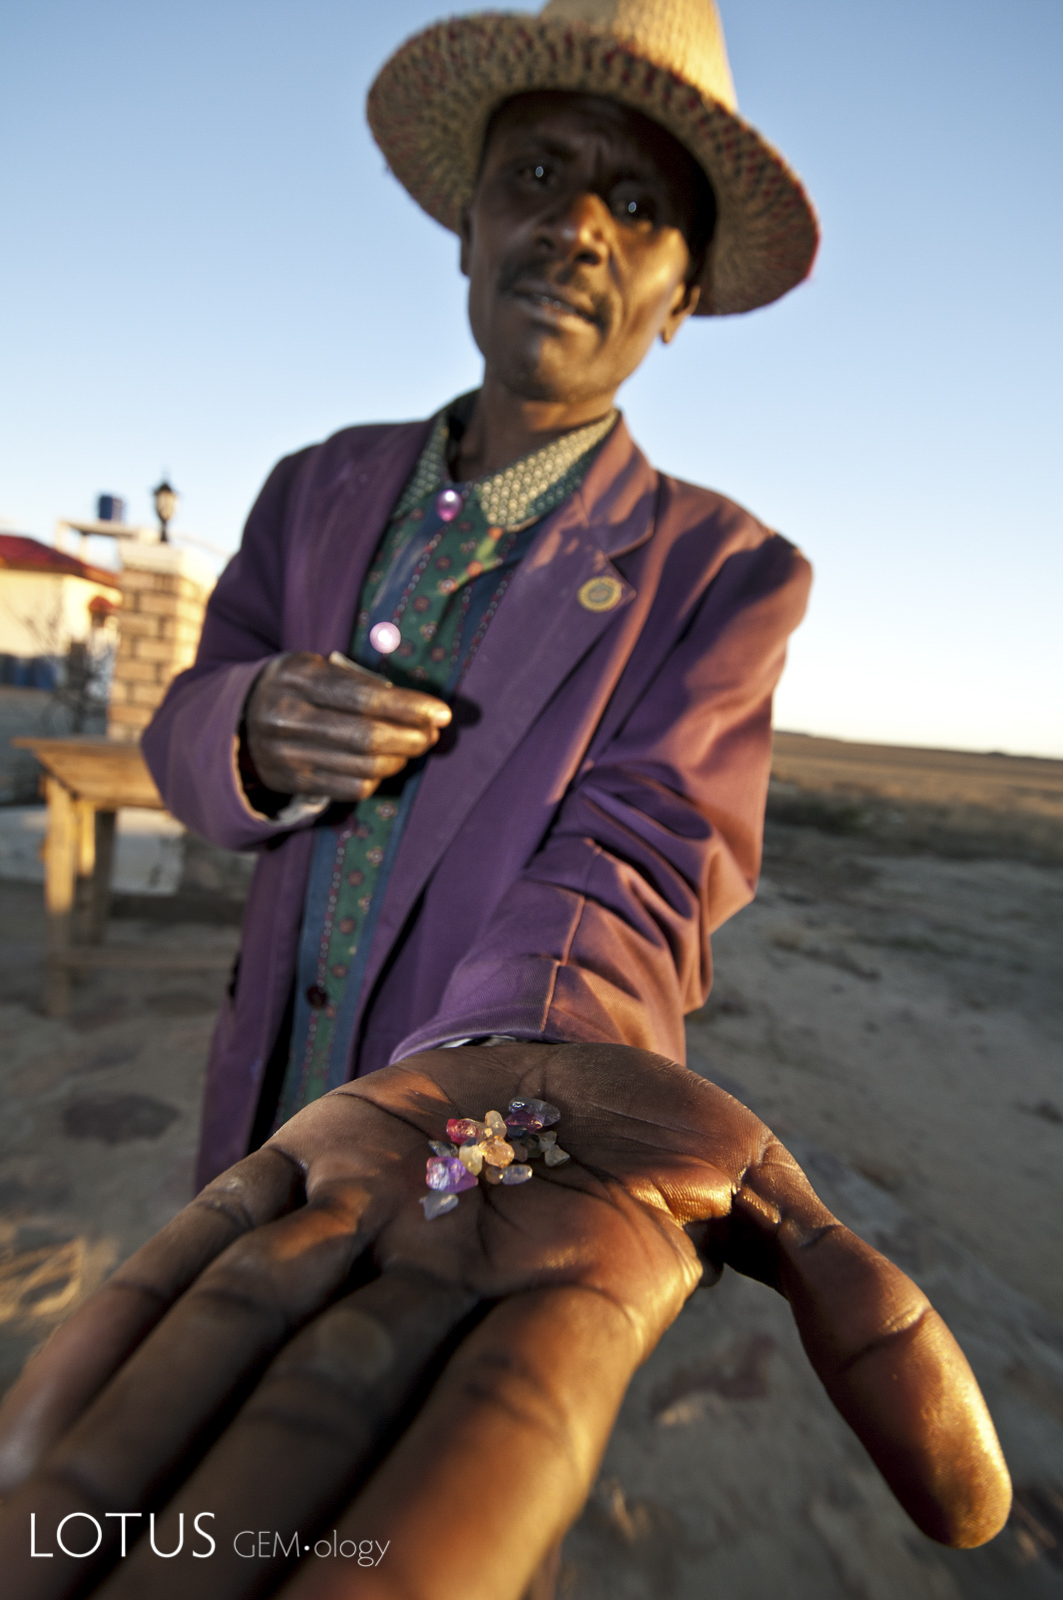 A sapphire trader with his latest offerings at Manombo, near Ilakaka, Madagascar. Photo: R.W. Hughes, 2010.